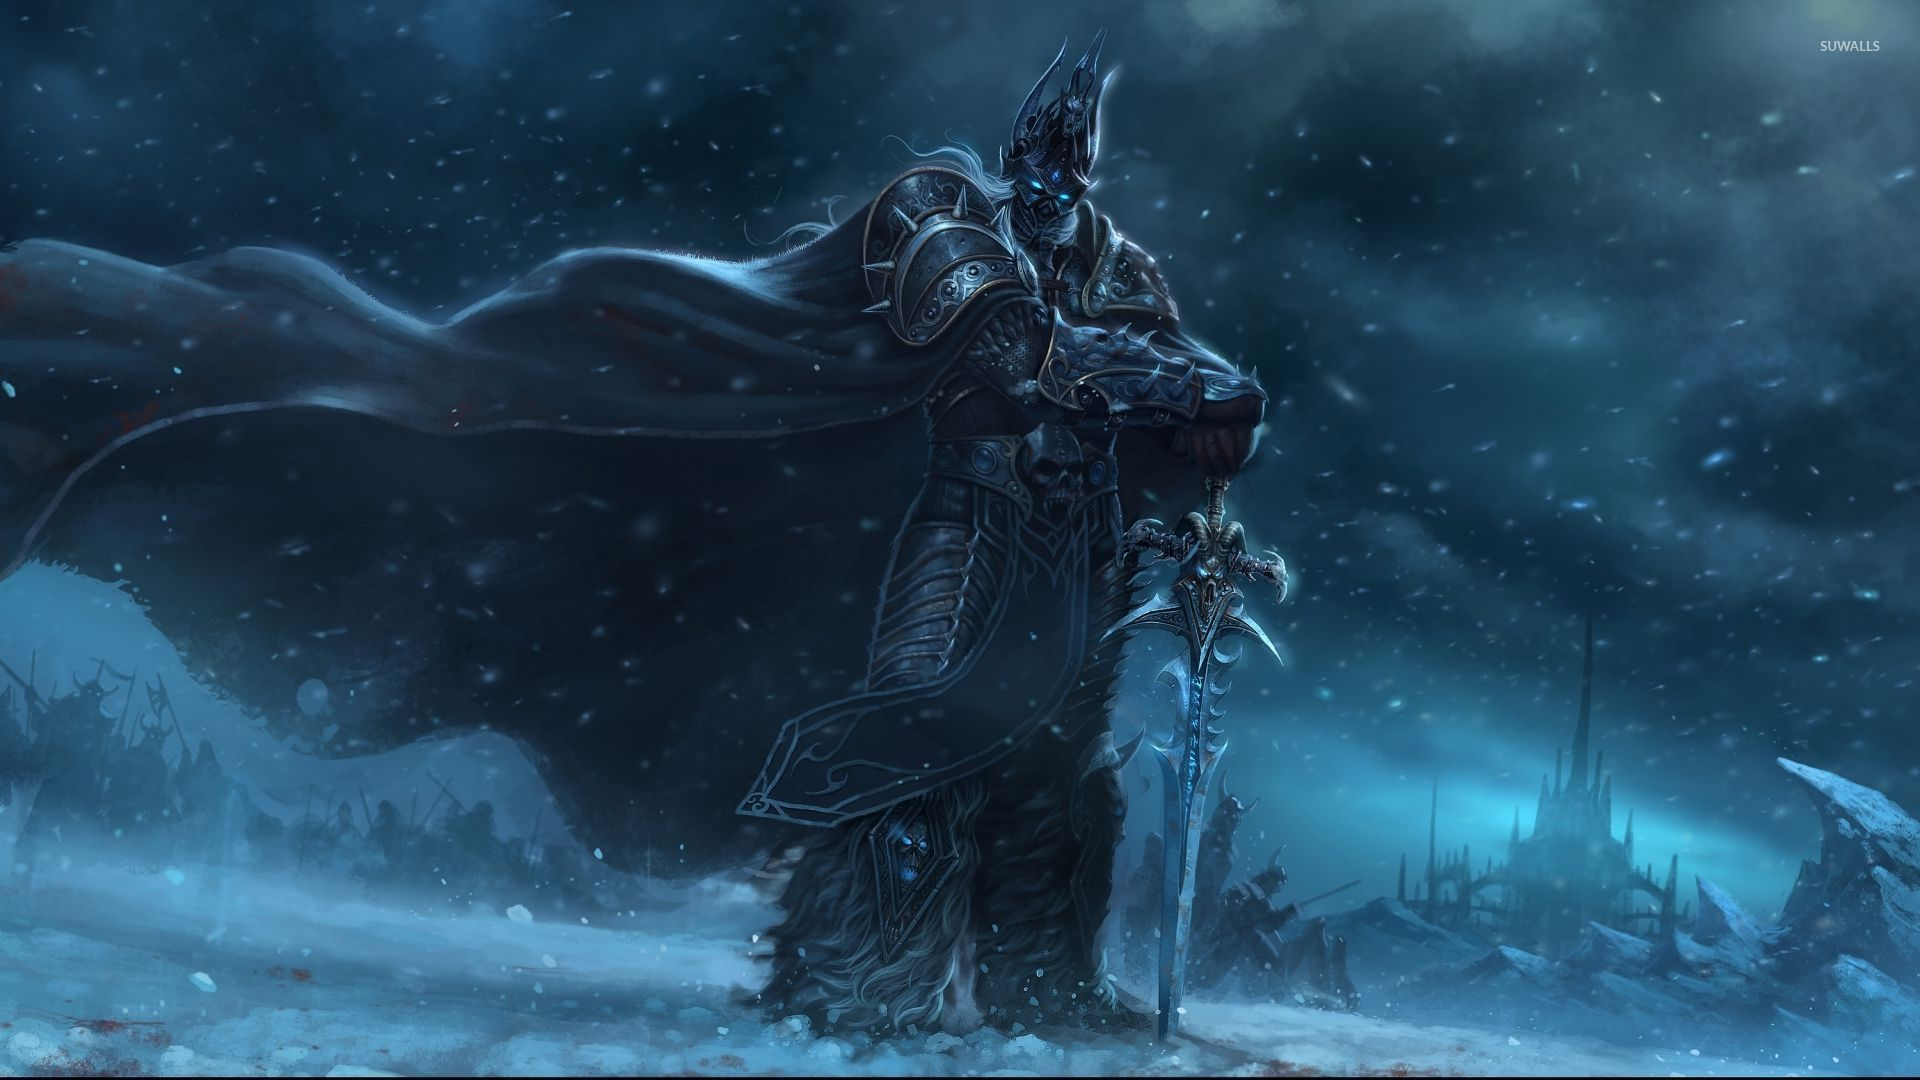 The Lich King Wallpaper Game Wallpapers 31960